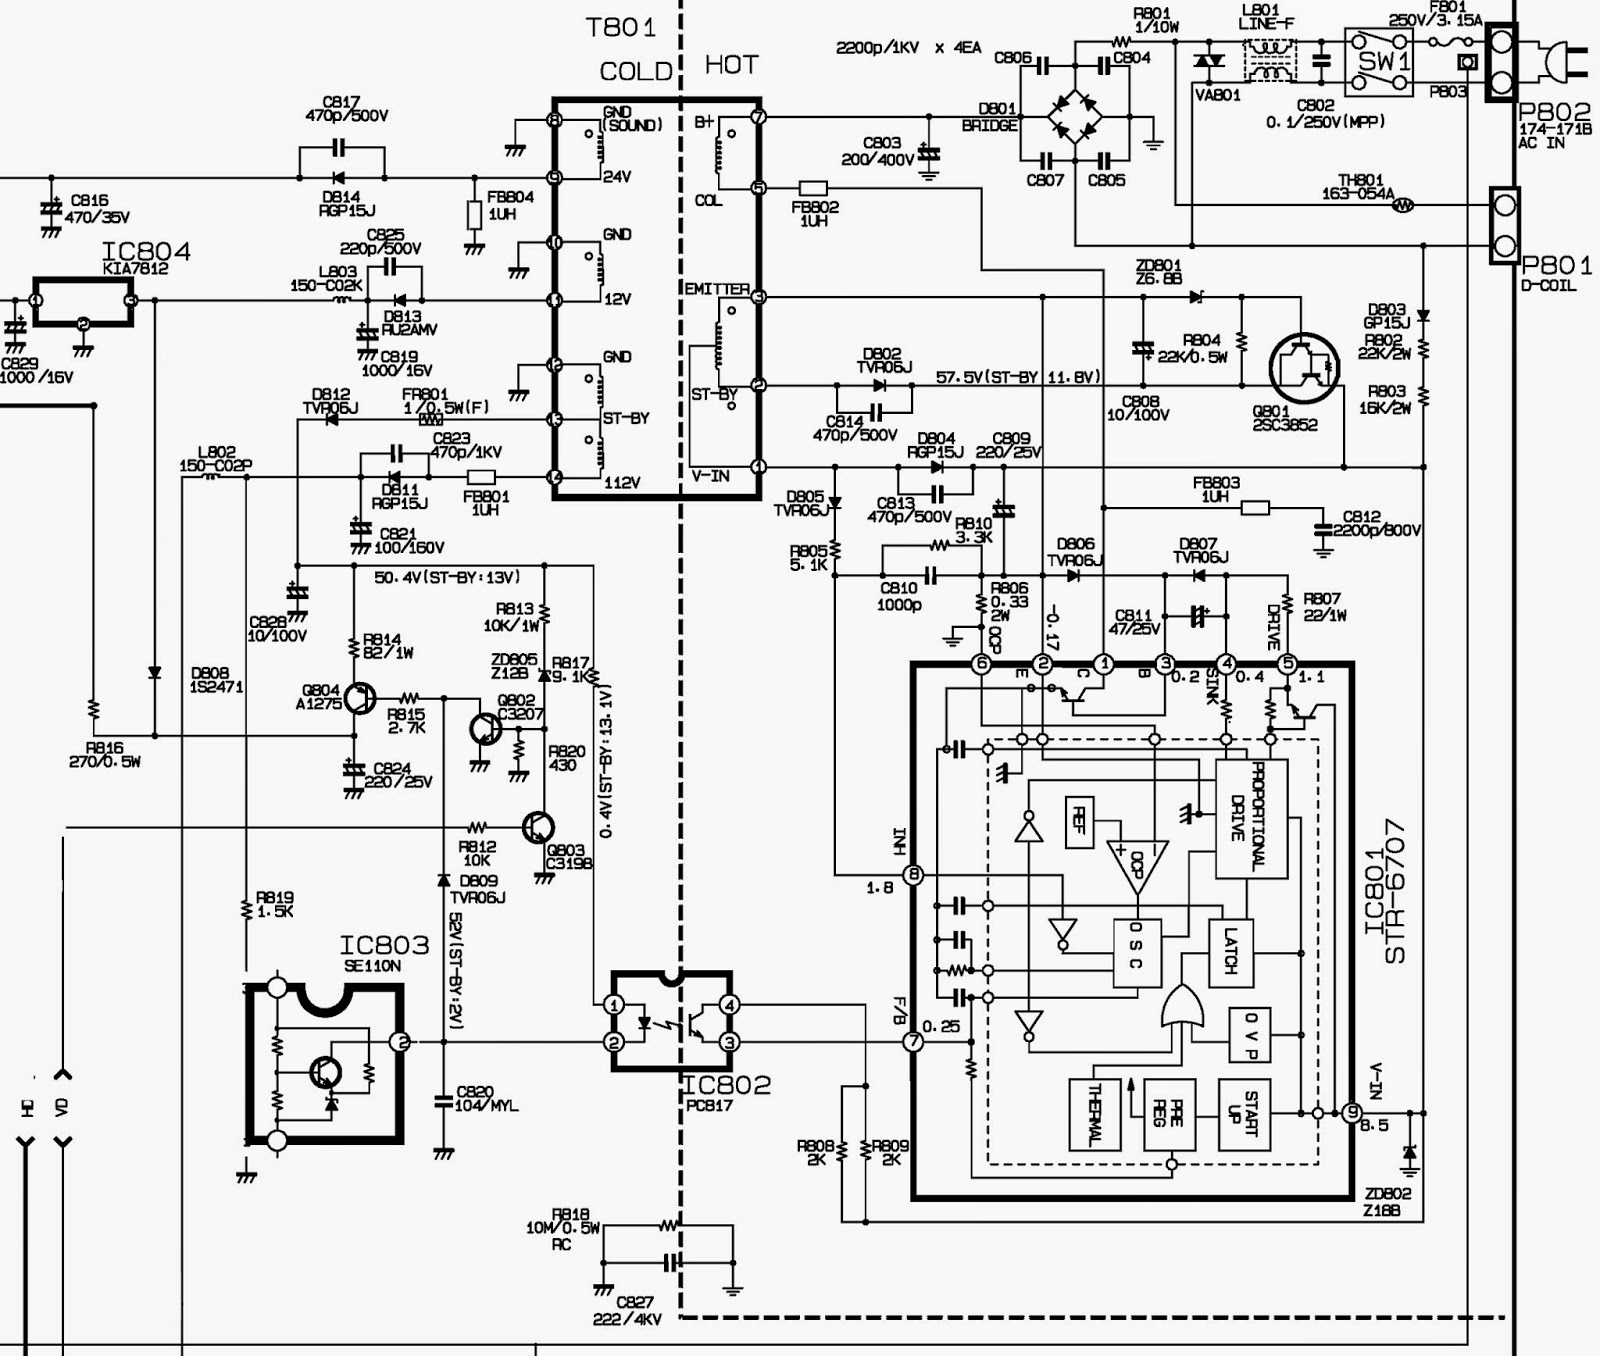 Swell Str 6707 Smps Schematic Circuit Diagram Electro Help Wiring Digital Resources Otenewoestevosnl